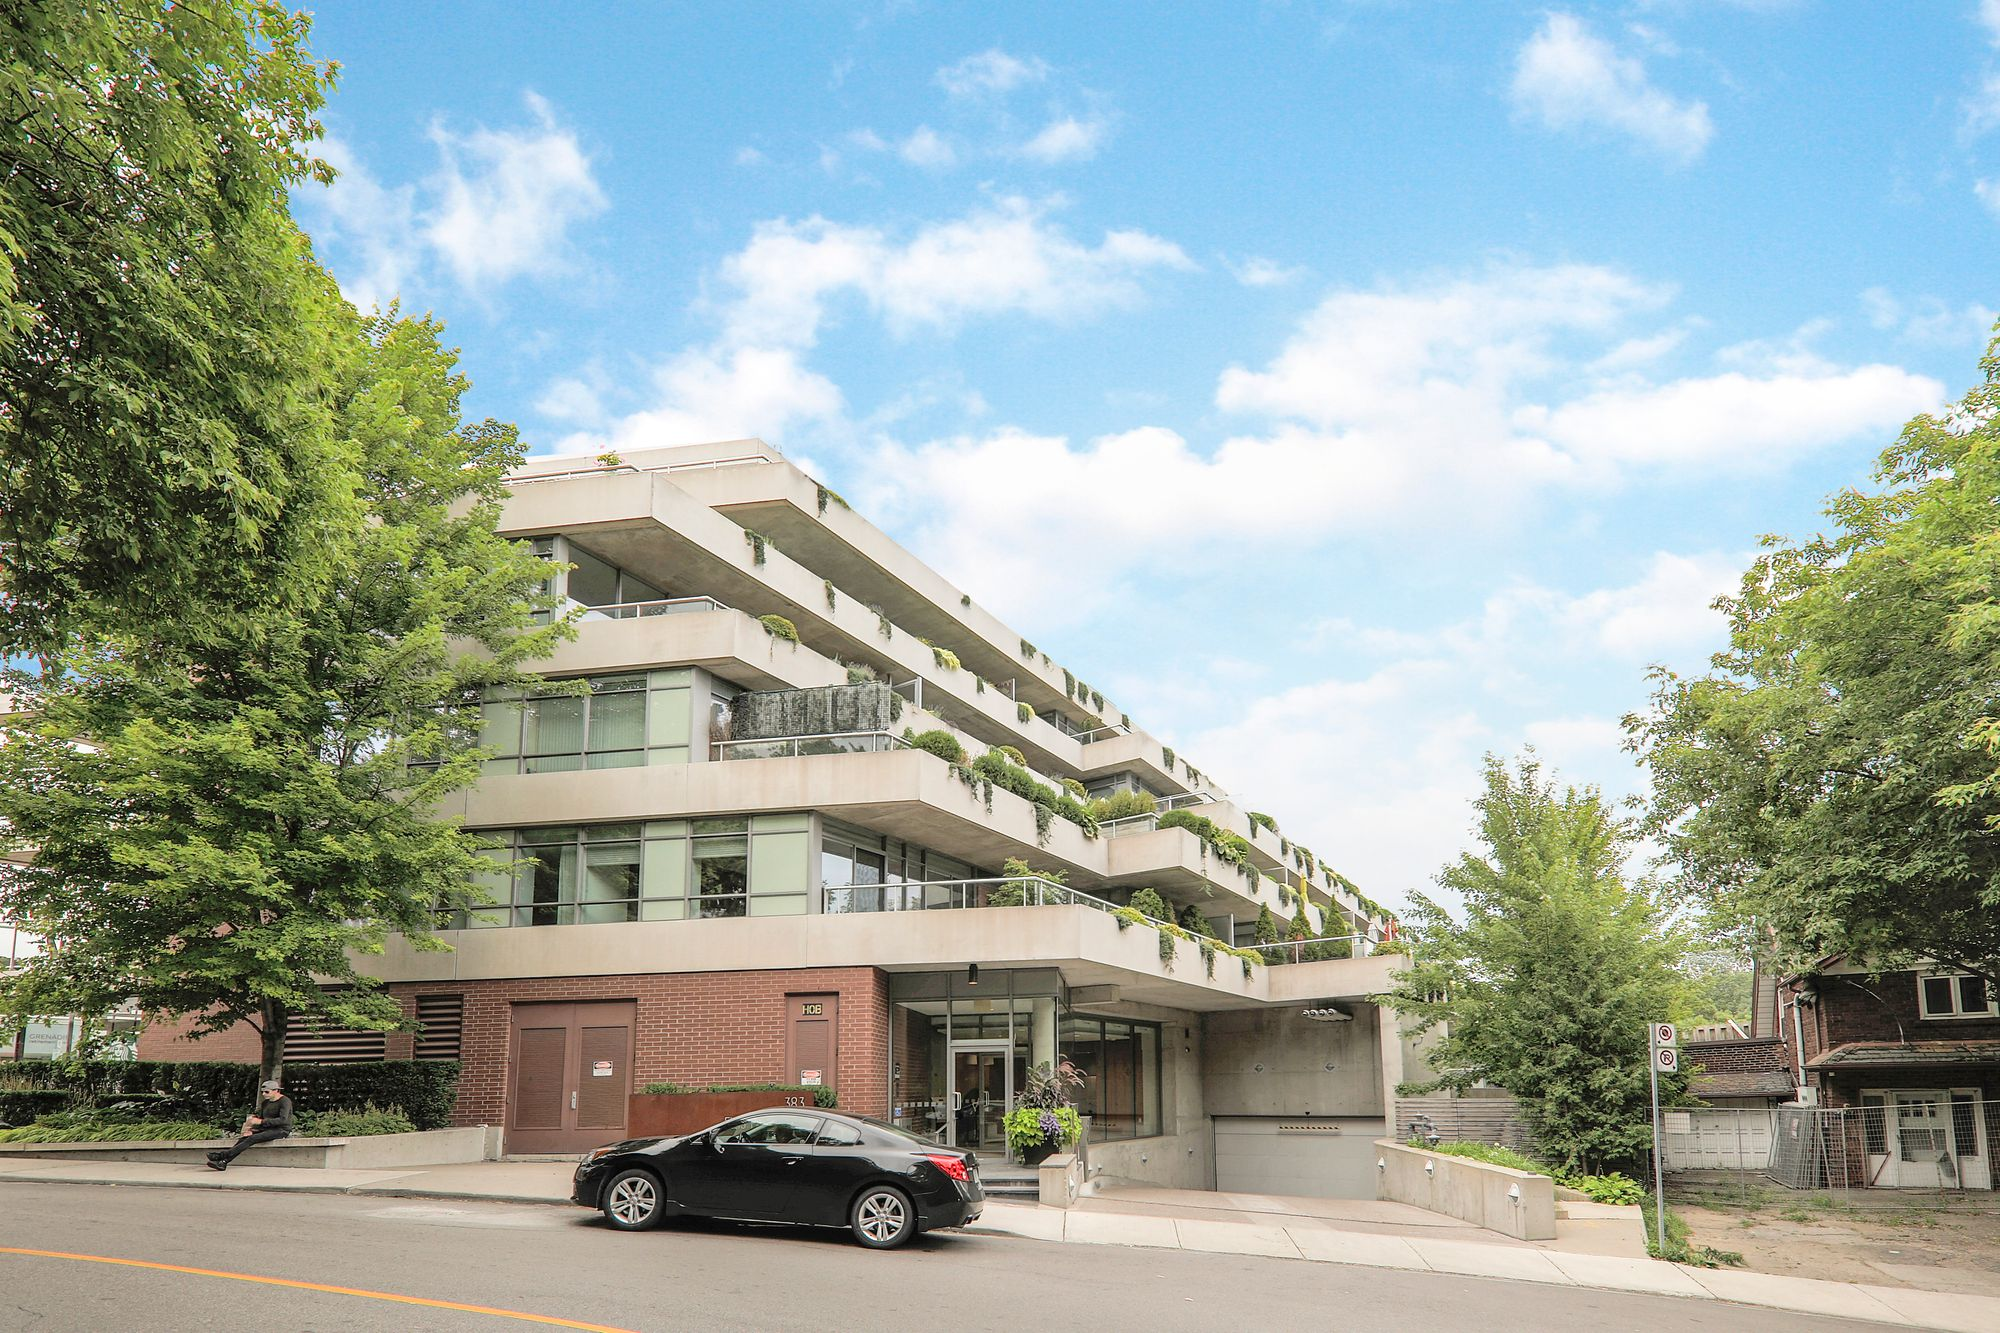 383 Ellis Park Rd. This condo townhouse at Home Condominium is located in  West End, Toronto - image #2 of 5 by Strata.ca